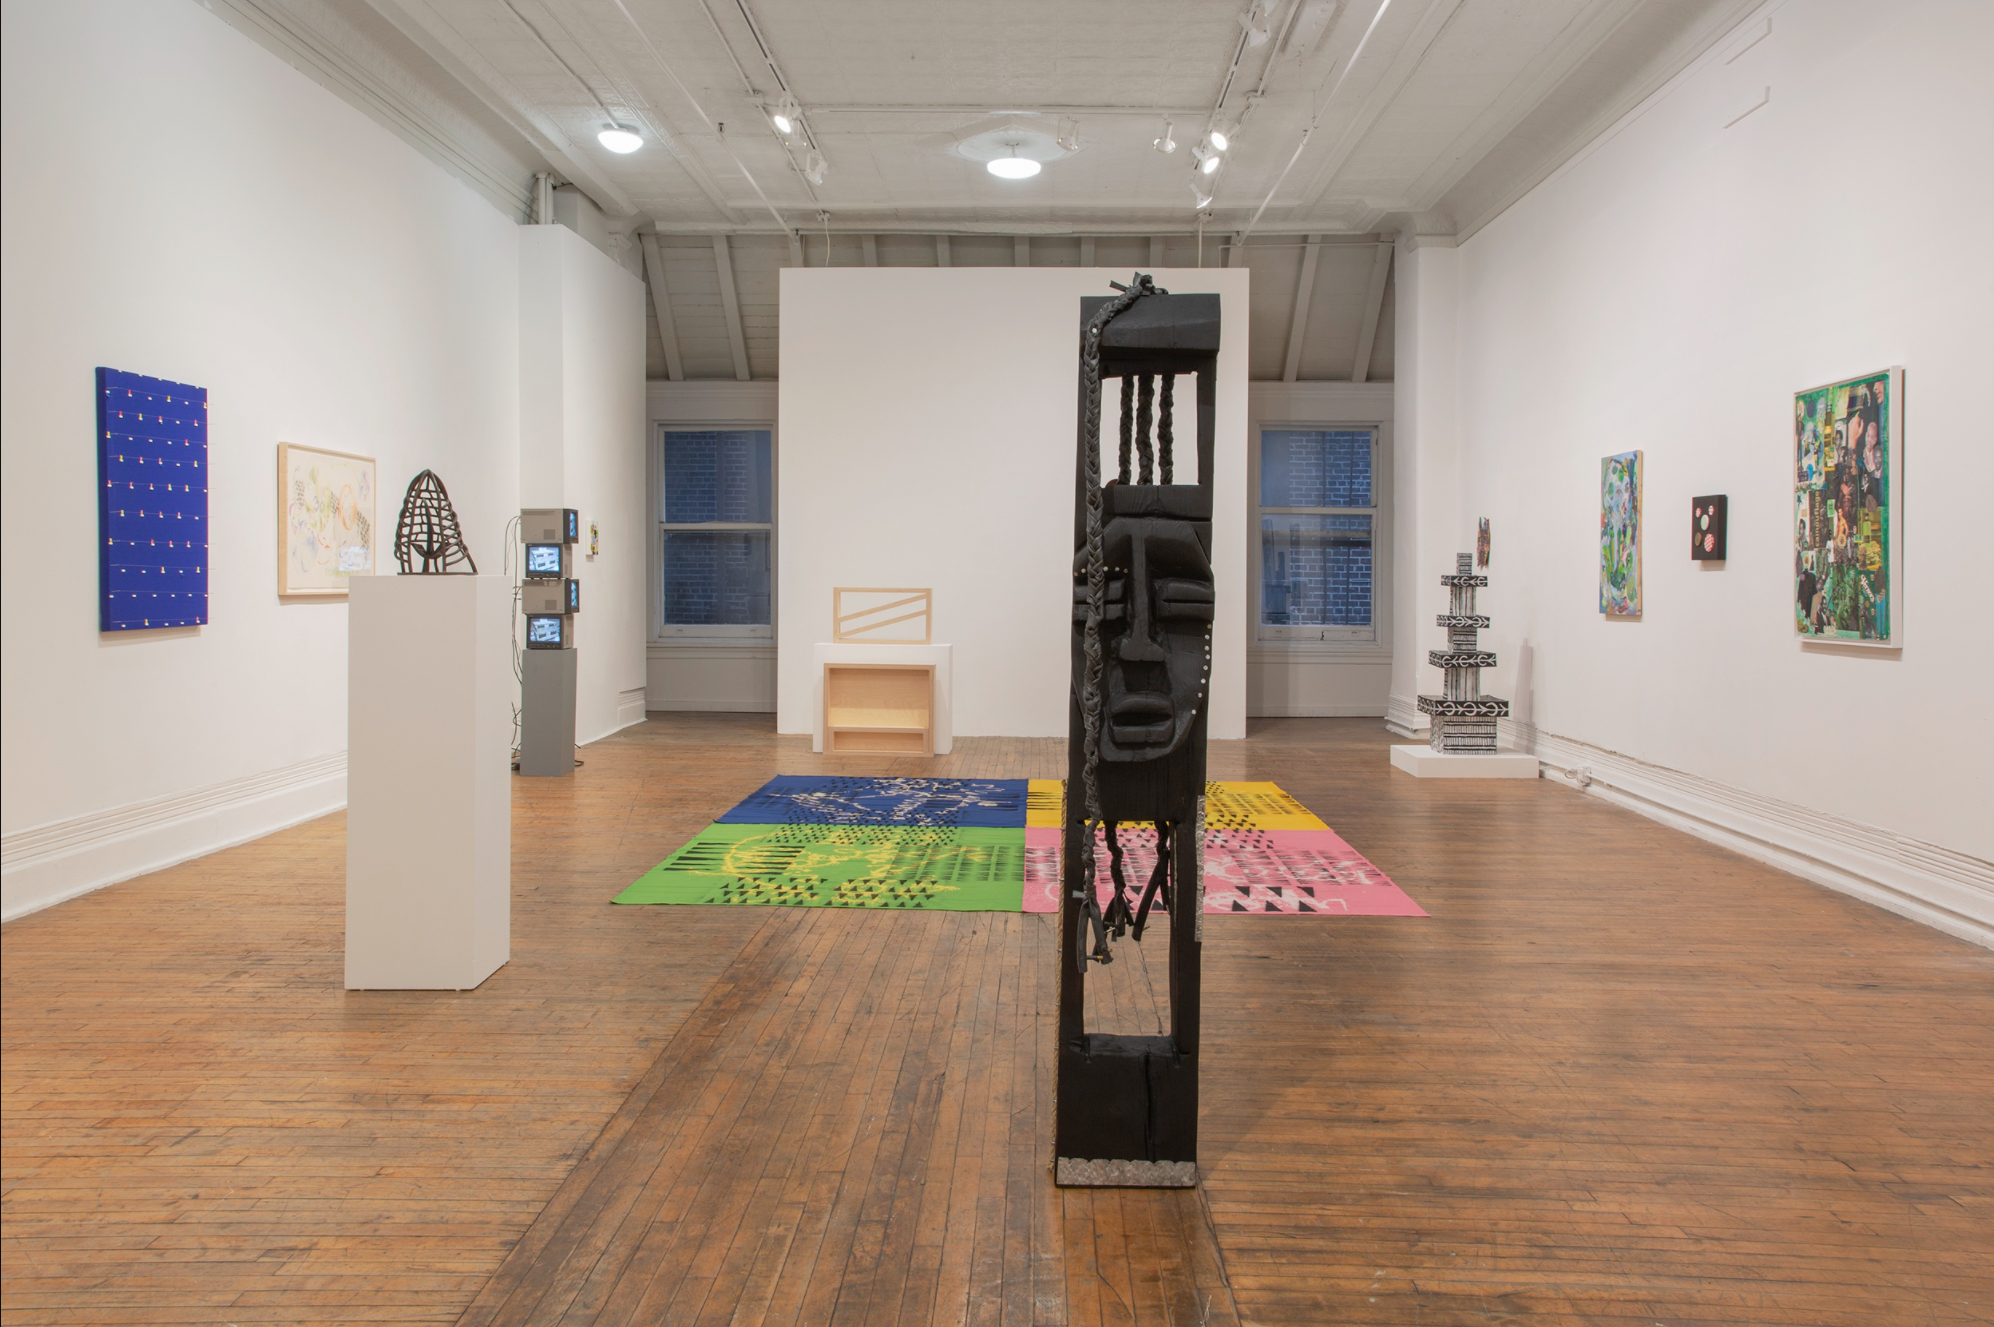 photo of the gallery space